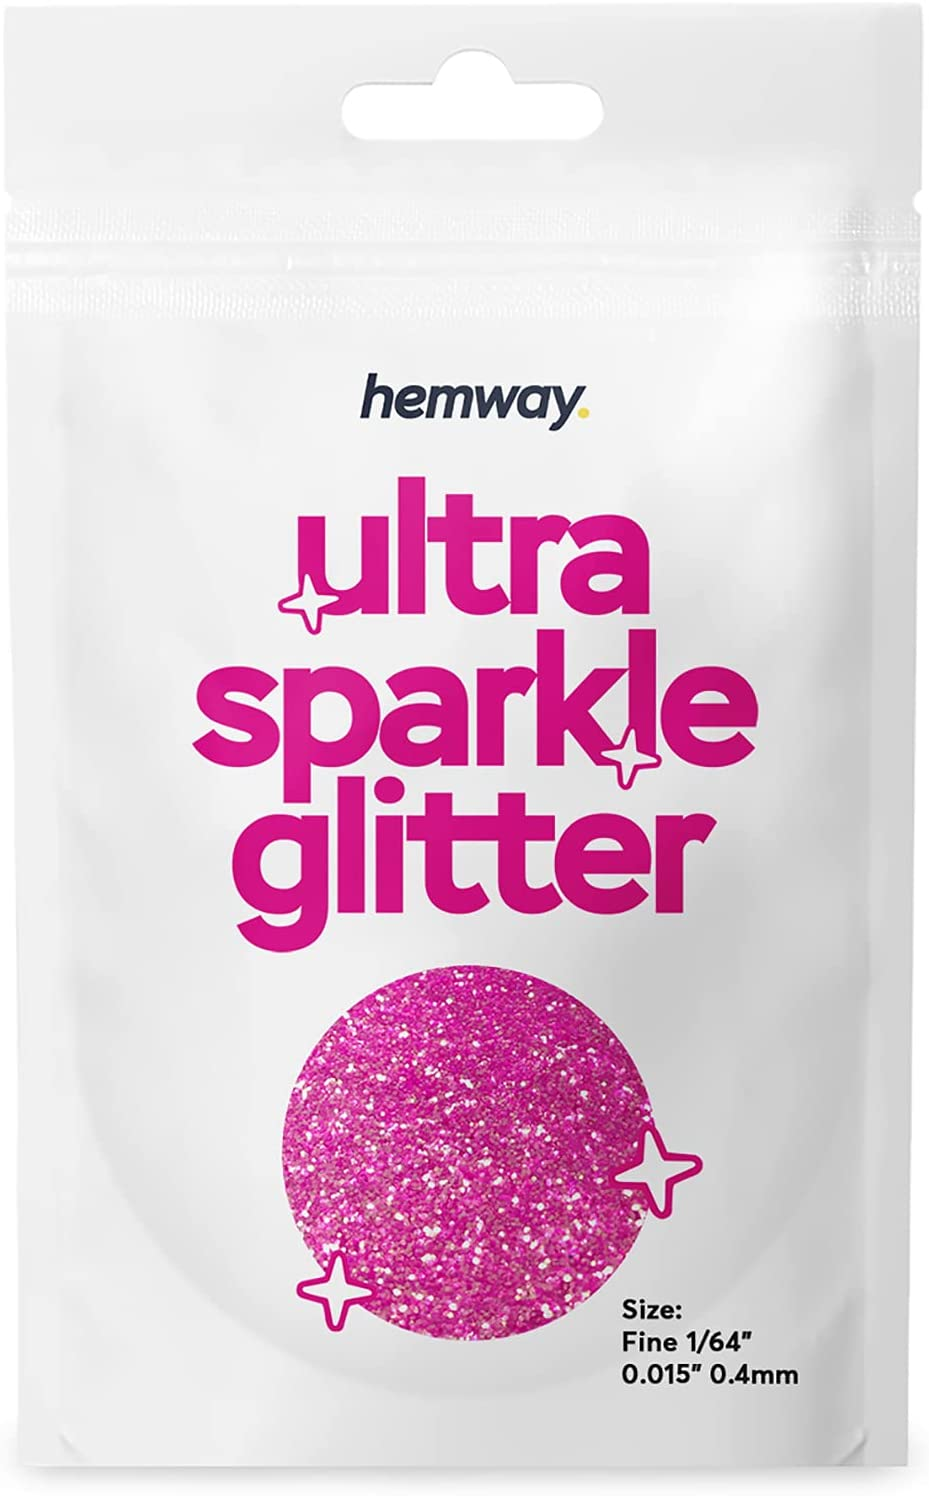 """Hemway Ultra Sparkle Glitter 10g / 0.35oz Sample Cosmetic Safe Body Hair Face Nail Festival Resin Crafts Weddings Art Beauty Tumbler - Fine (1/64"""" 0.015"""" 0.4mm) - Baby Pink Iridescent : Beauty & Personal Care"""